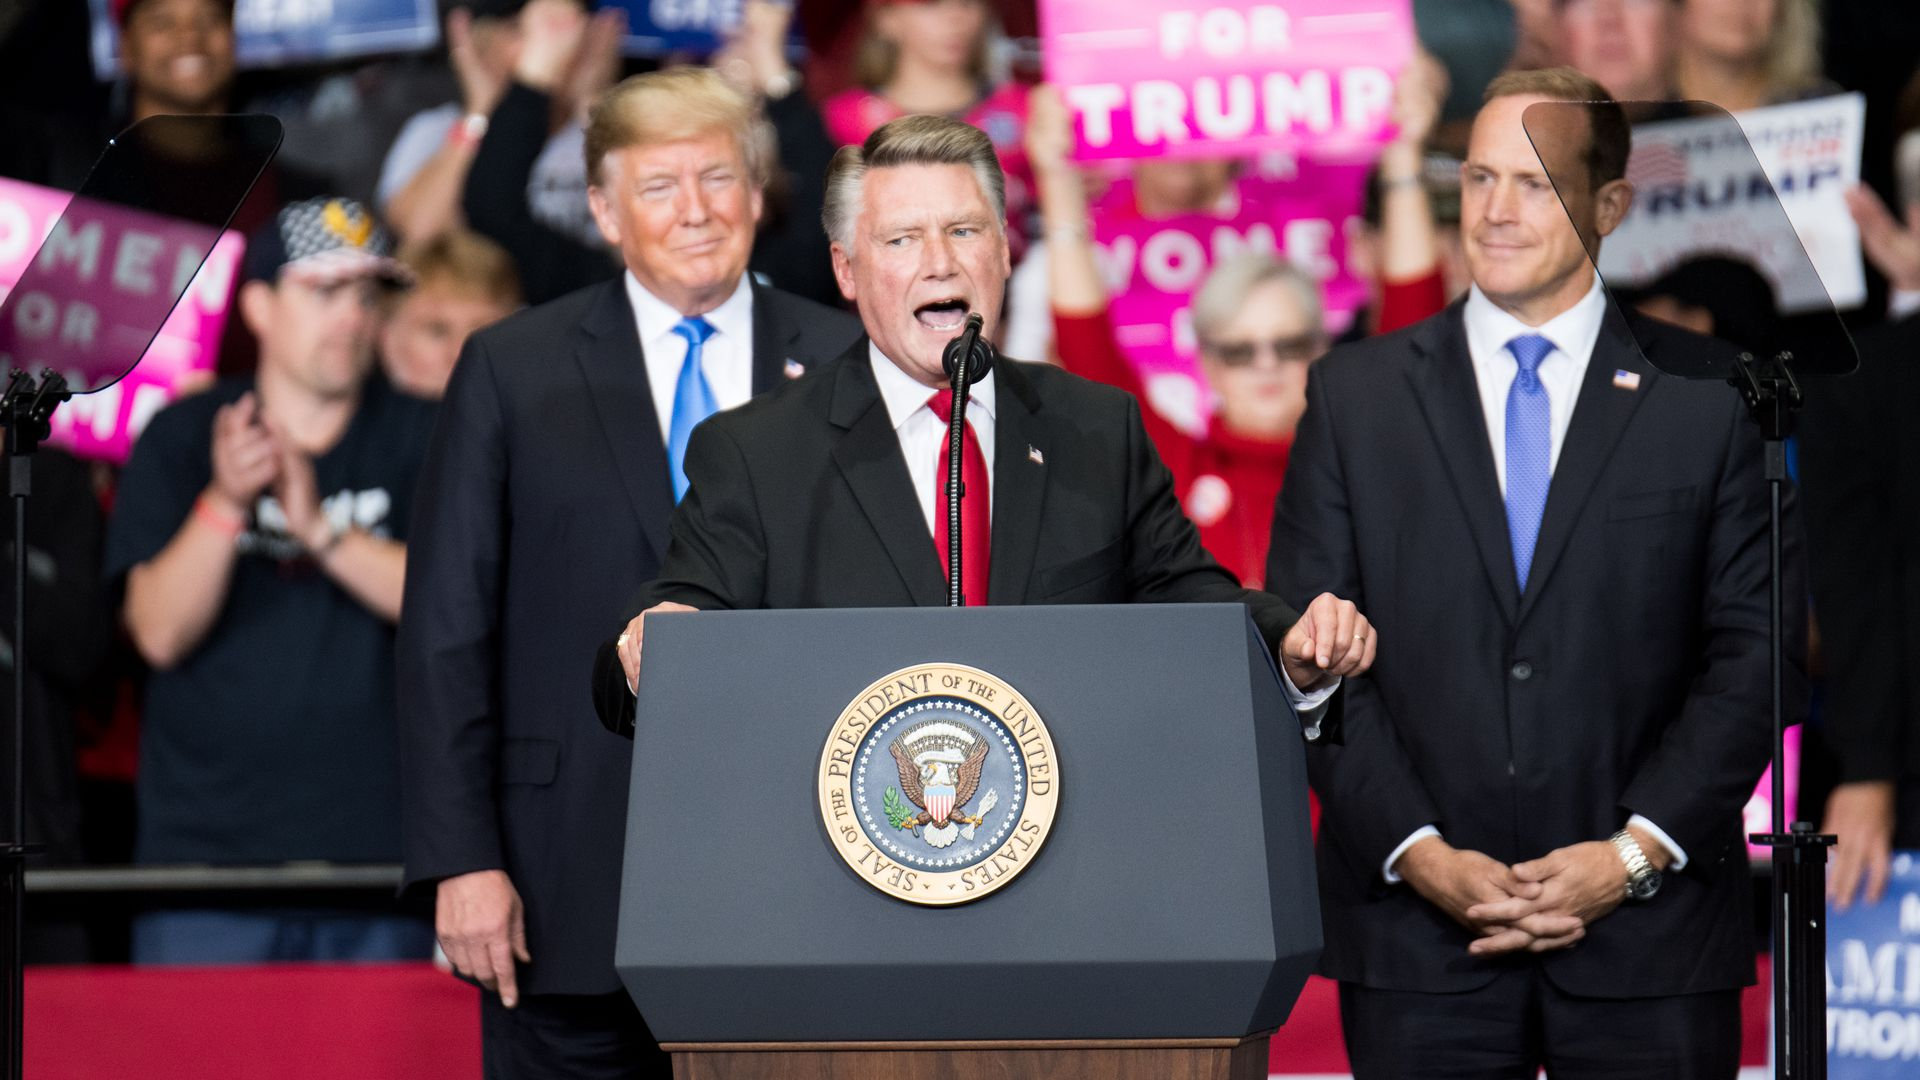 North Carolina's 9th district Republican candidate at a campaign rally last year.